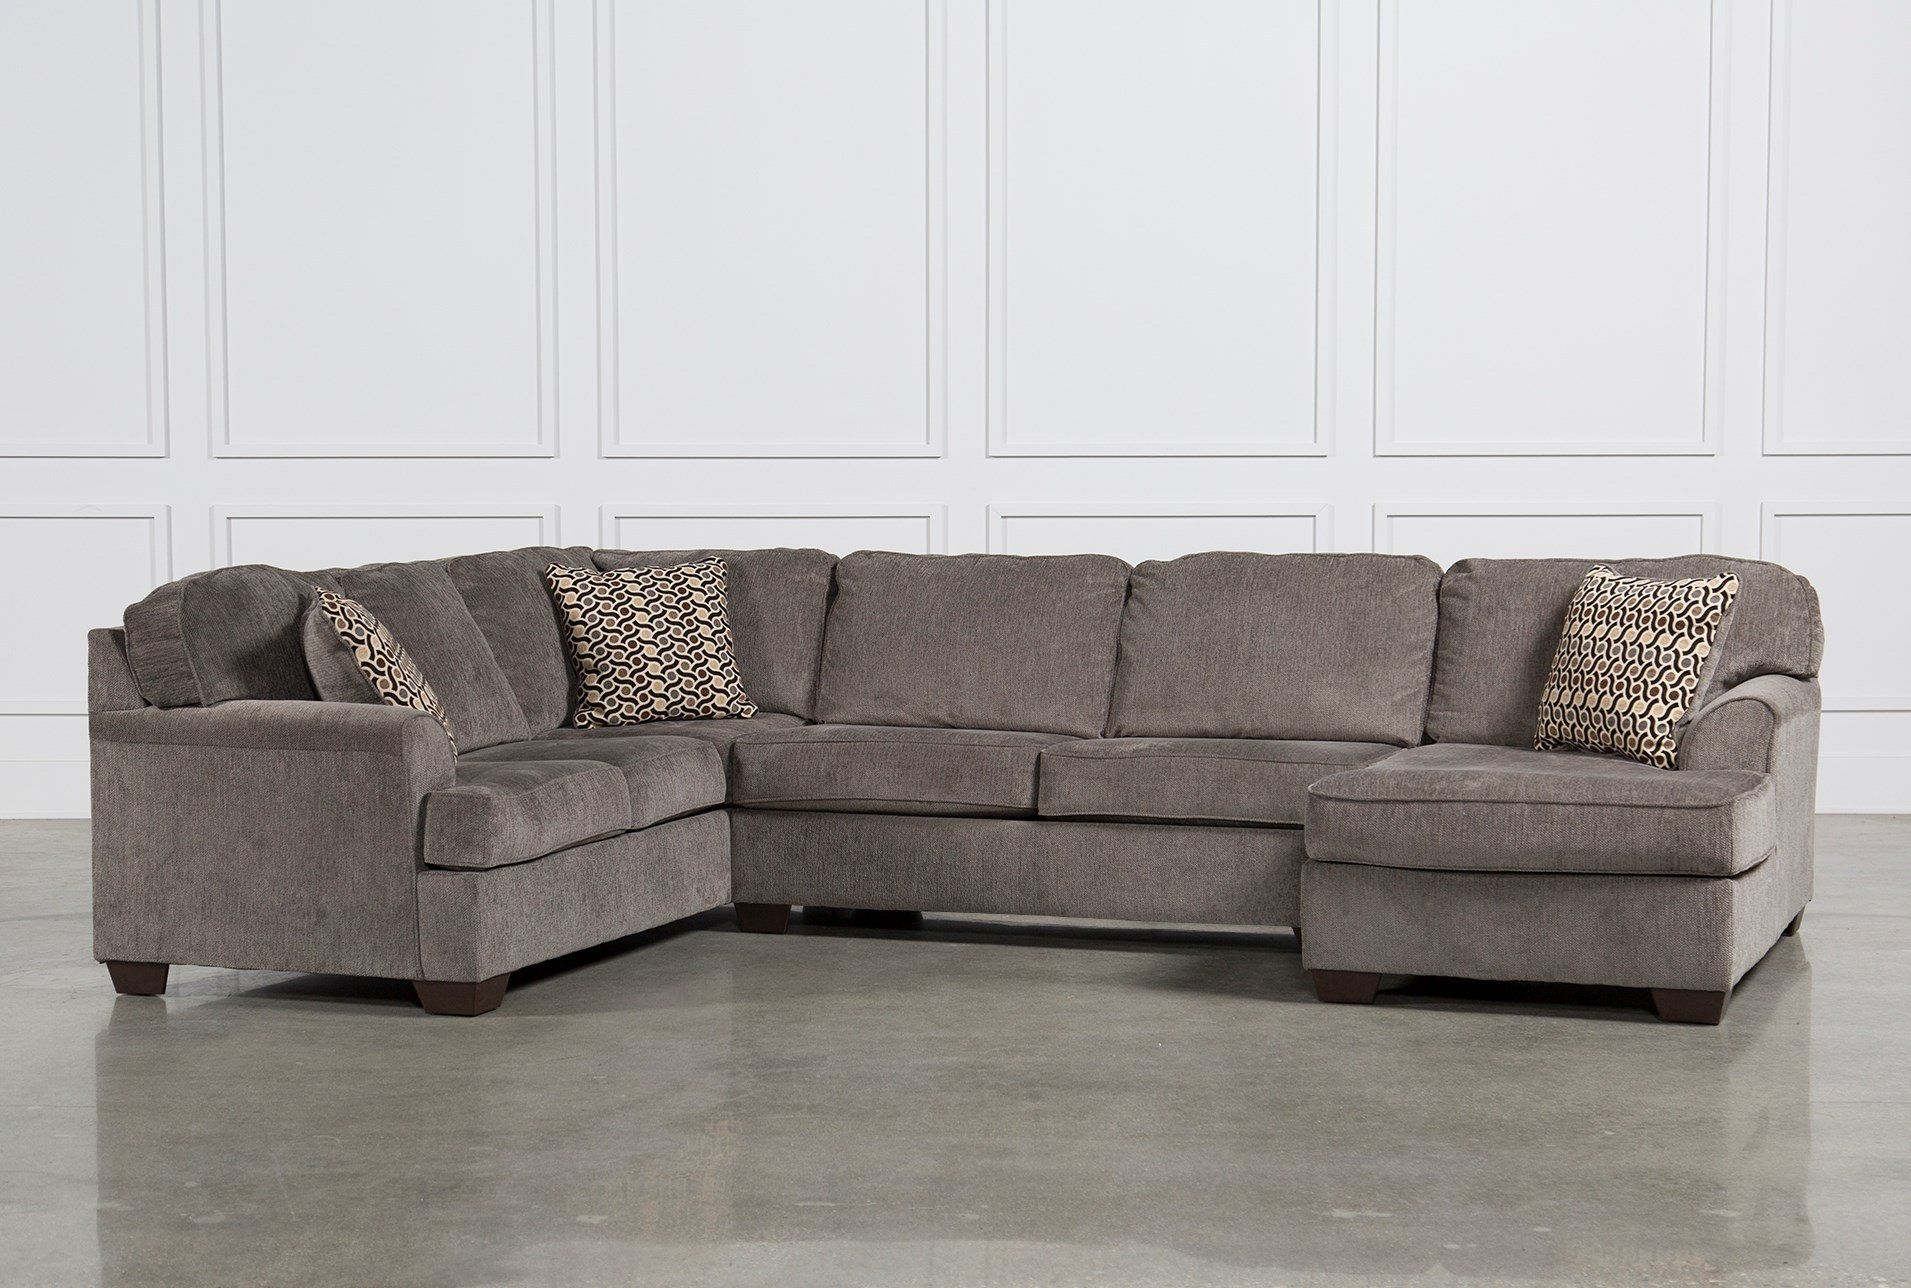 Loric Smoke 3 Piece Sectional W/raf Chaise | Upholstery, Pillows And With Malbry Point 3 Piece Sectionals With Laf Chaise (View 5 of 30)